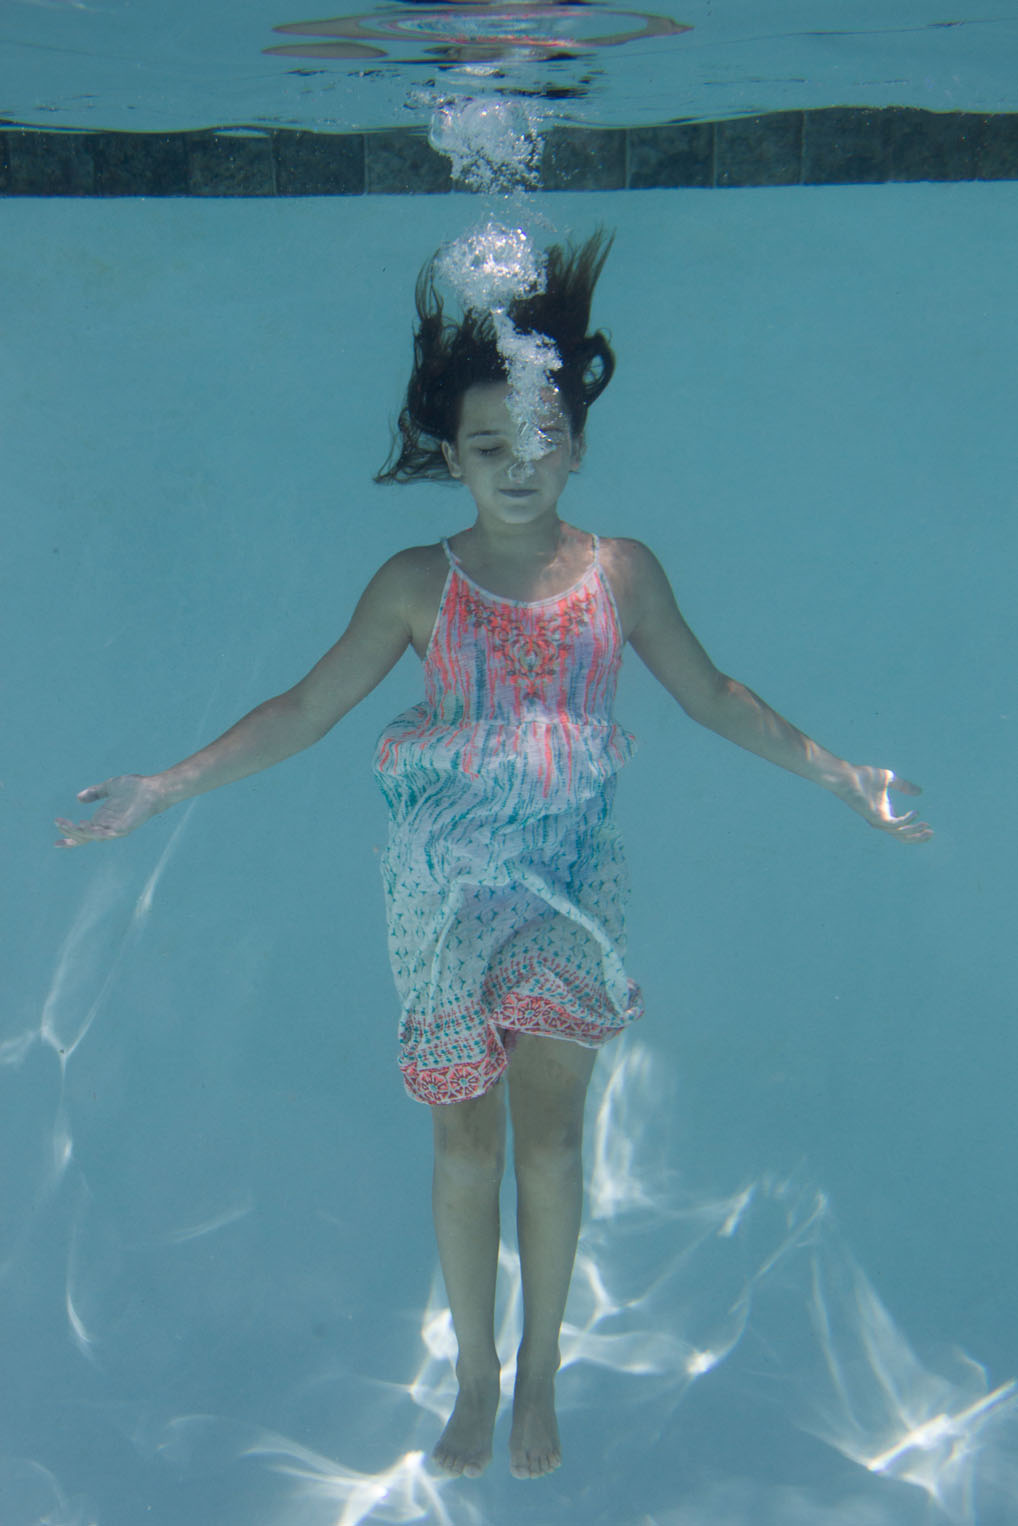 Bella with her arms outstretched standing in the pool